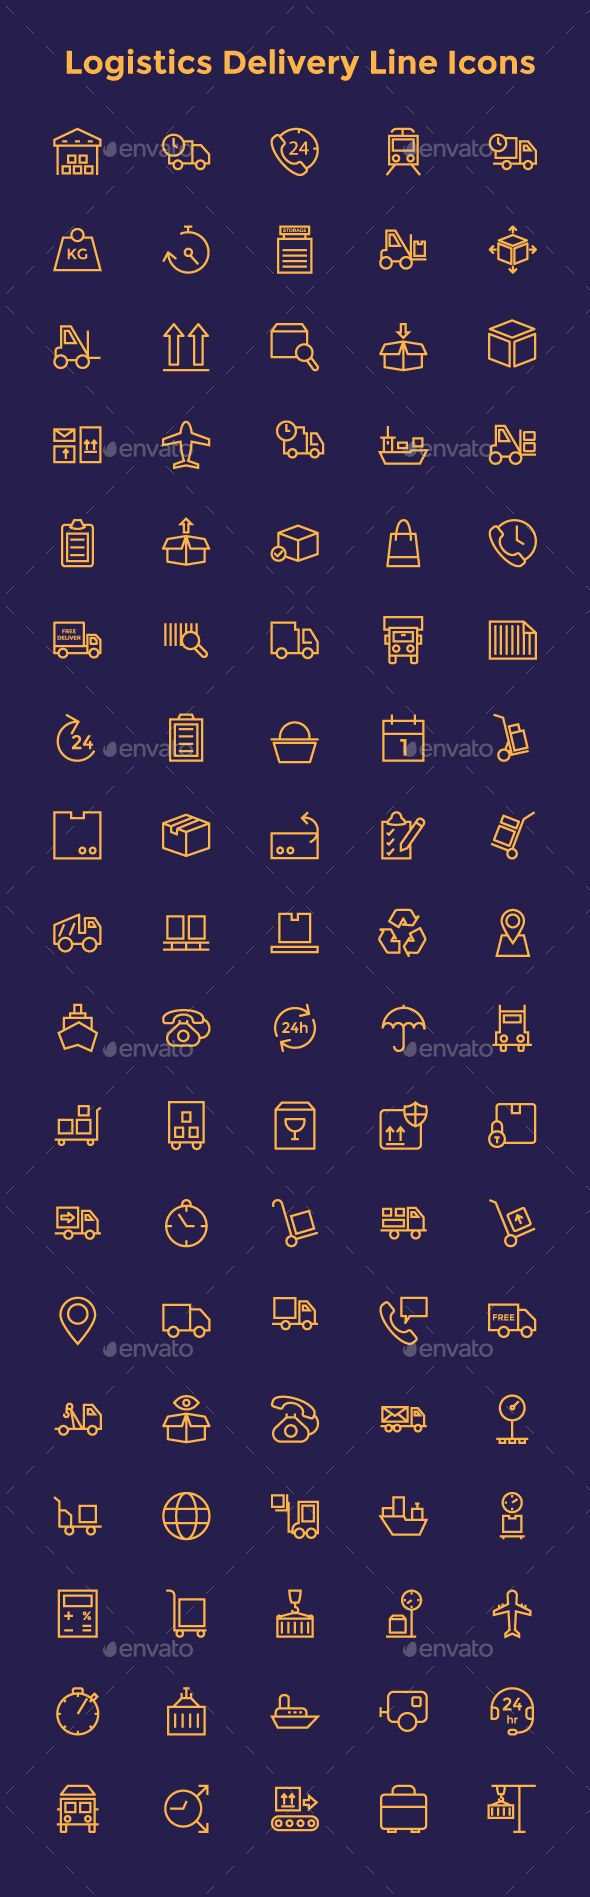 Logistics Delivery Line Icons #design Download: http://graphicriver.net/item/logistics-delivery-line-icons/14296760?ref=ksioks